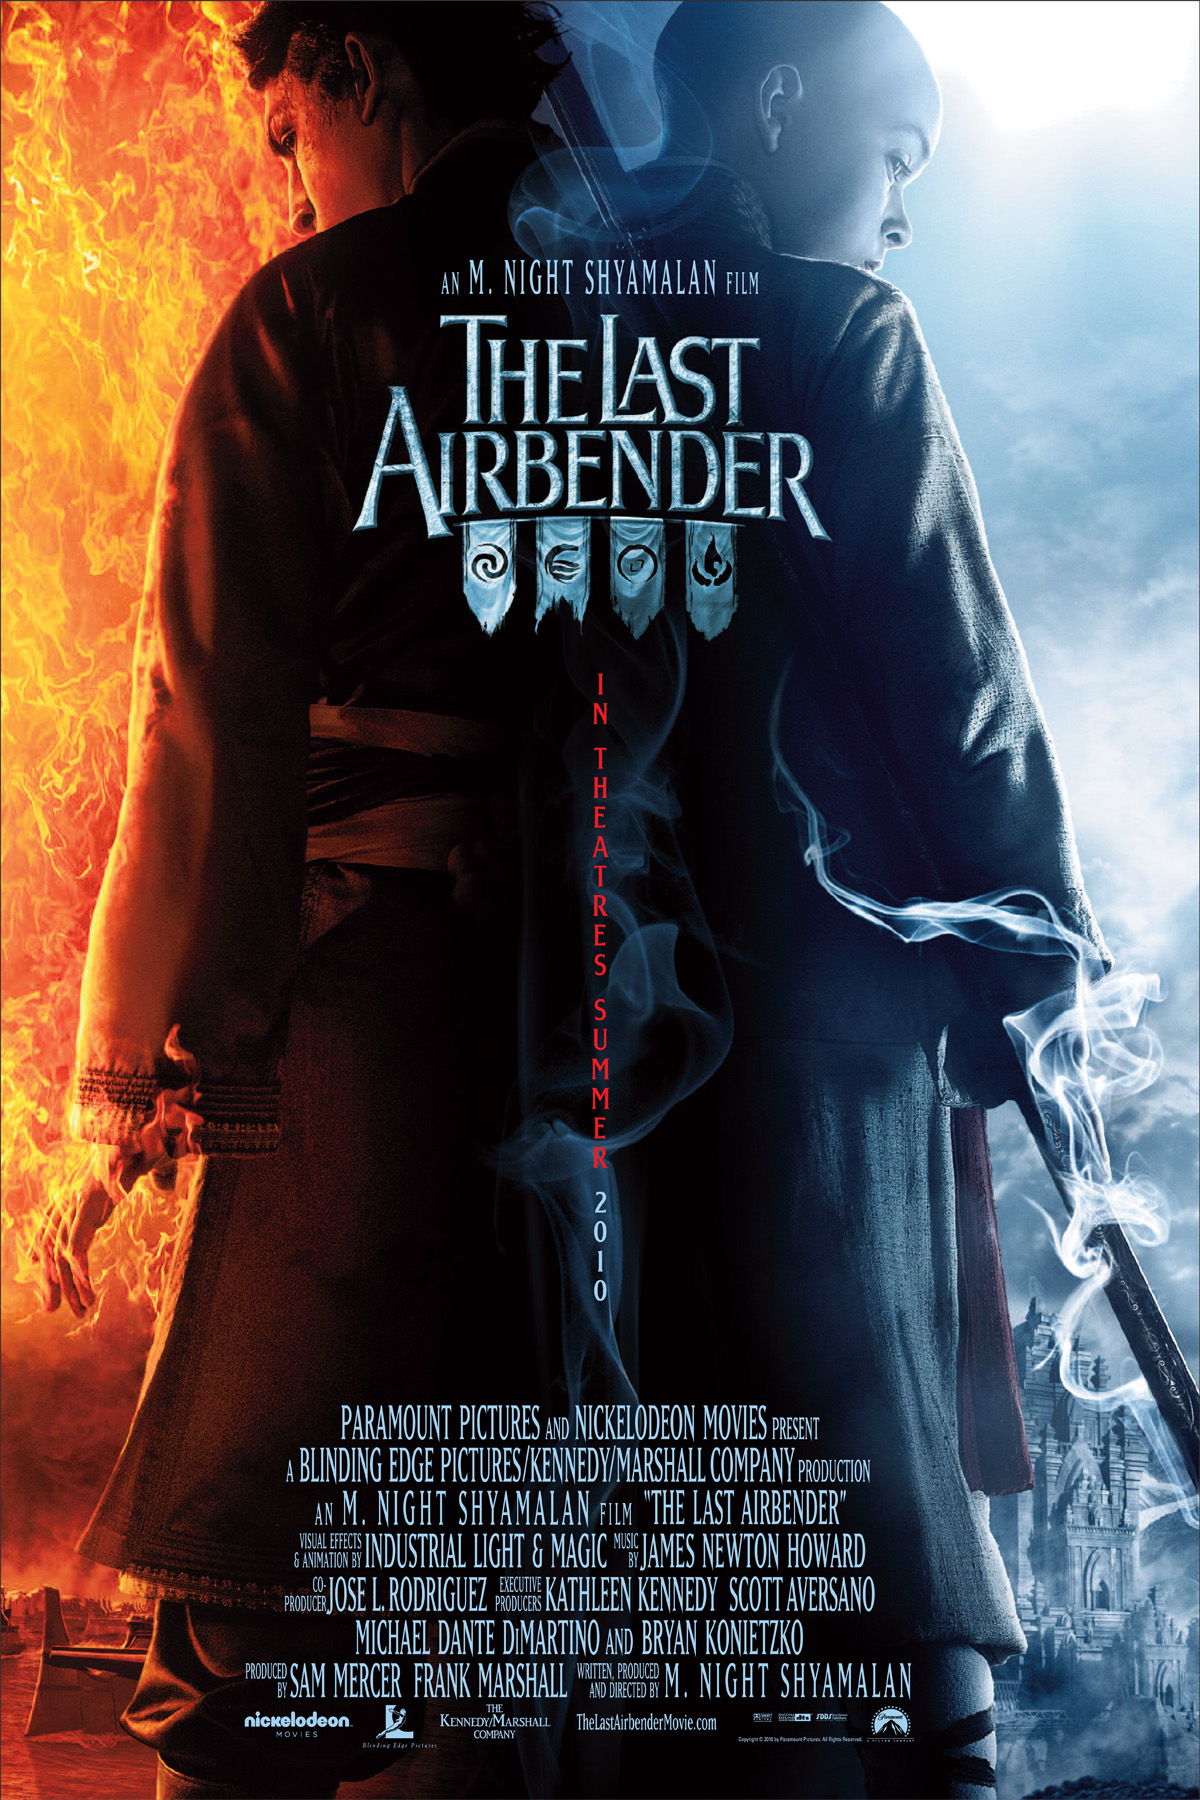 The Last Airbender (2010) - Directed by: M. Night ShyamalanStarring: Noah Ringer, Nicola Peltz, Jackson Rathbone, Dev Patel, Shaun Toub, Aasif Mandvi, Cliff CurtisRated: PGRunning Time: 1h 43mTMM Score: 1 stars out of 5STRENGTHS: It's Not As Long As You Might ExpectWEAKNESSES: It Fails At Everything It Attempts